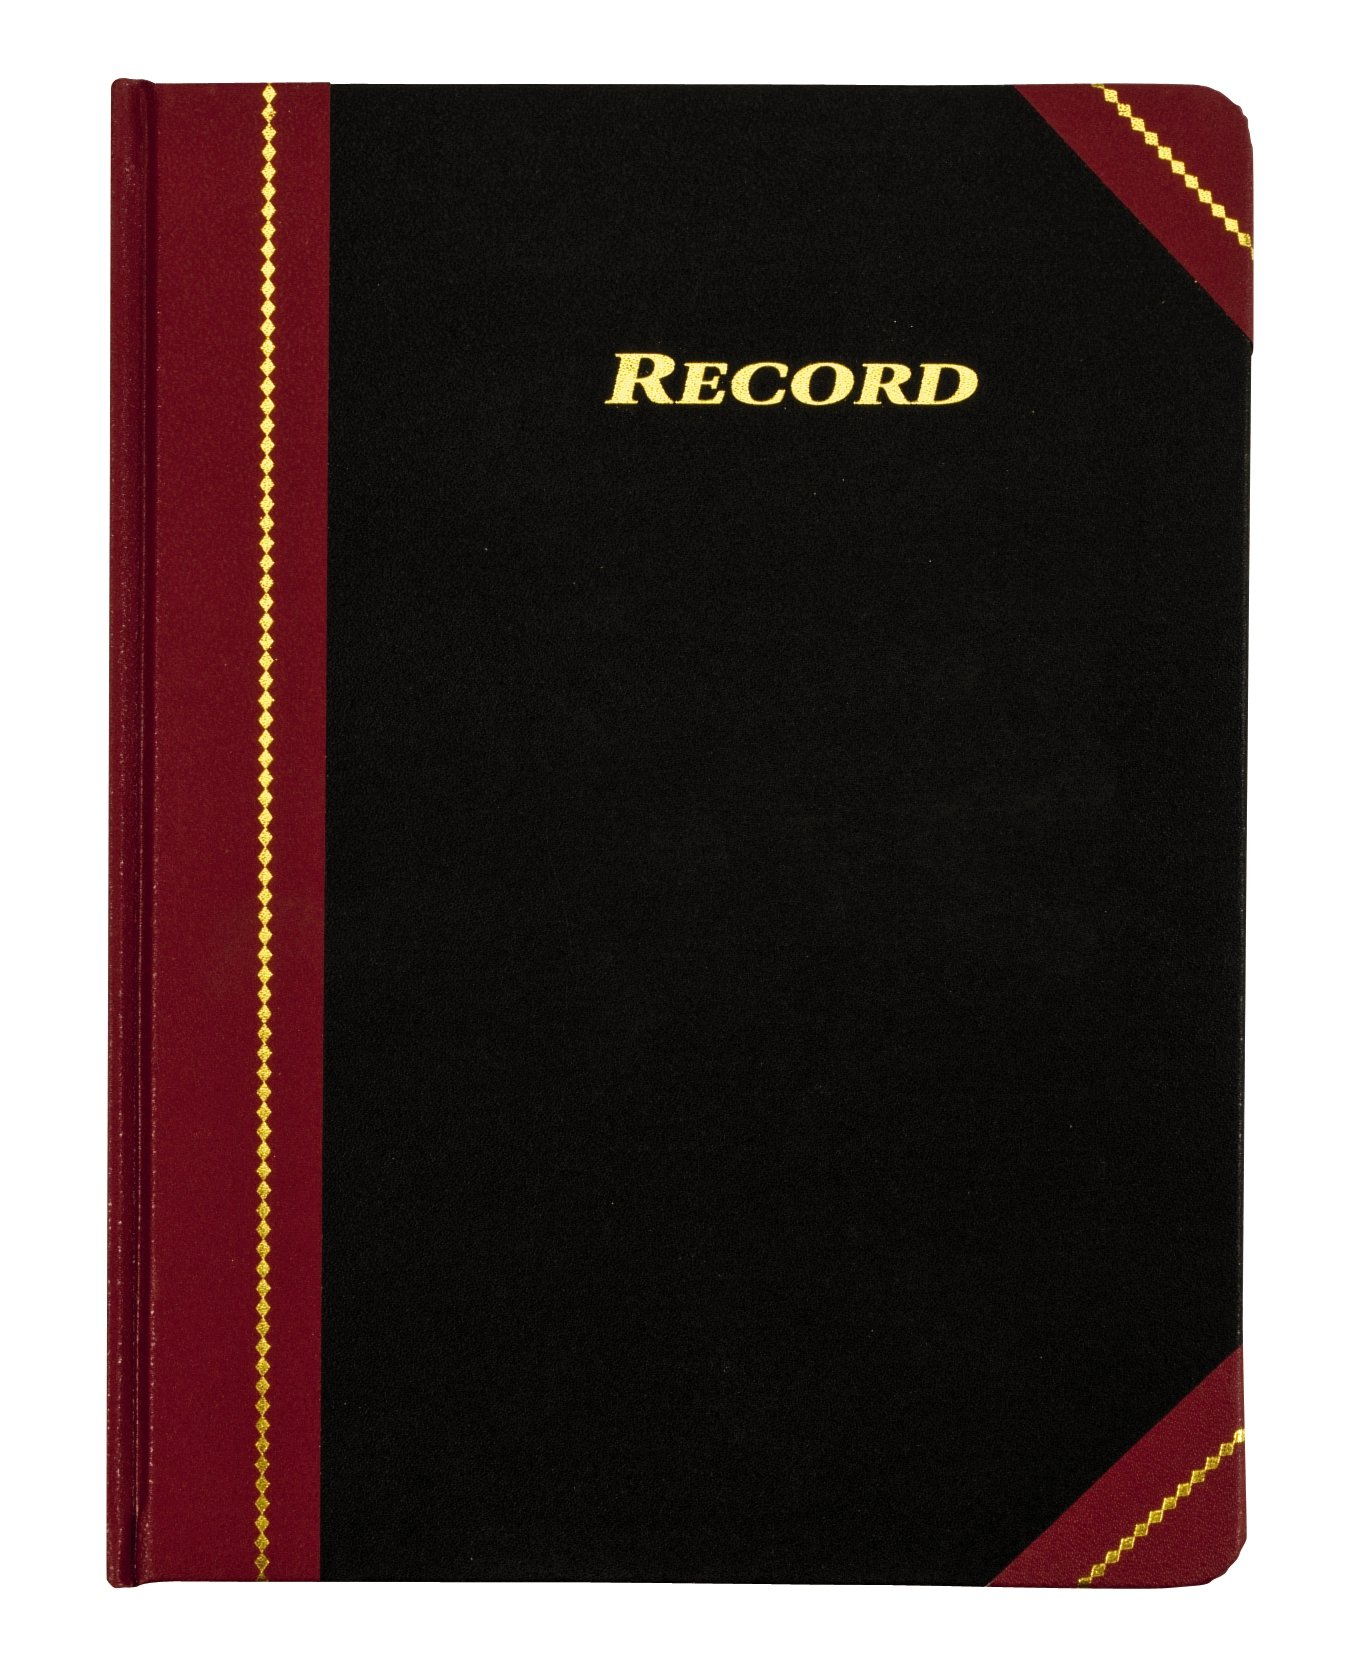 Adams Record Ledger, 8.25 x 10.75 Inches, 5 Squares per Inch, 300 Tinted Pages, Black and Maroon (ARB810R3M)